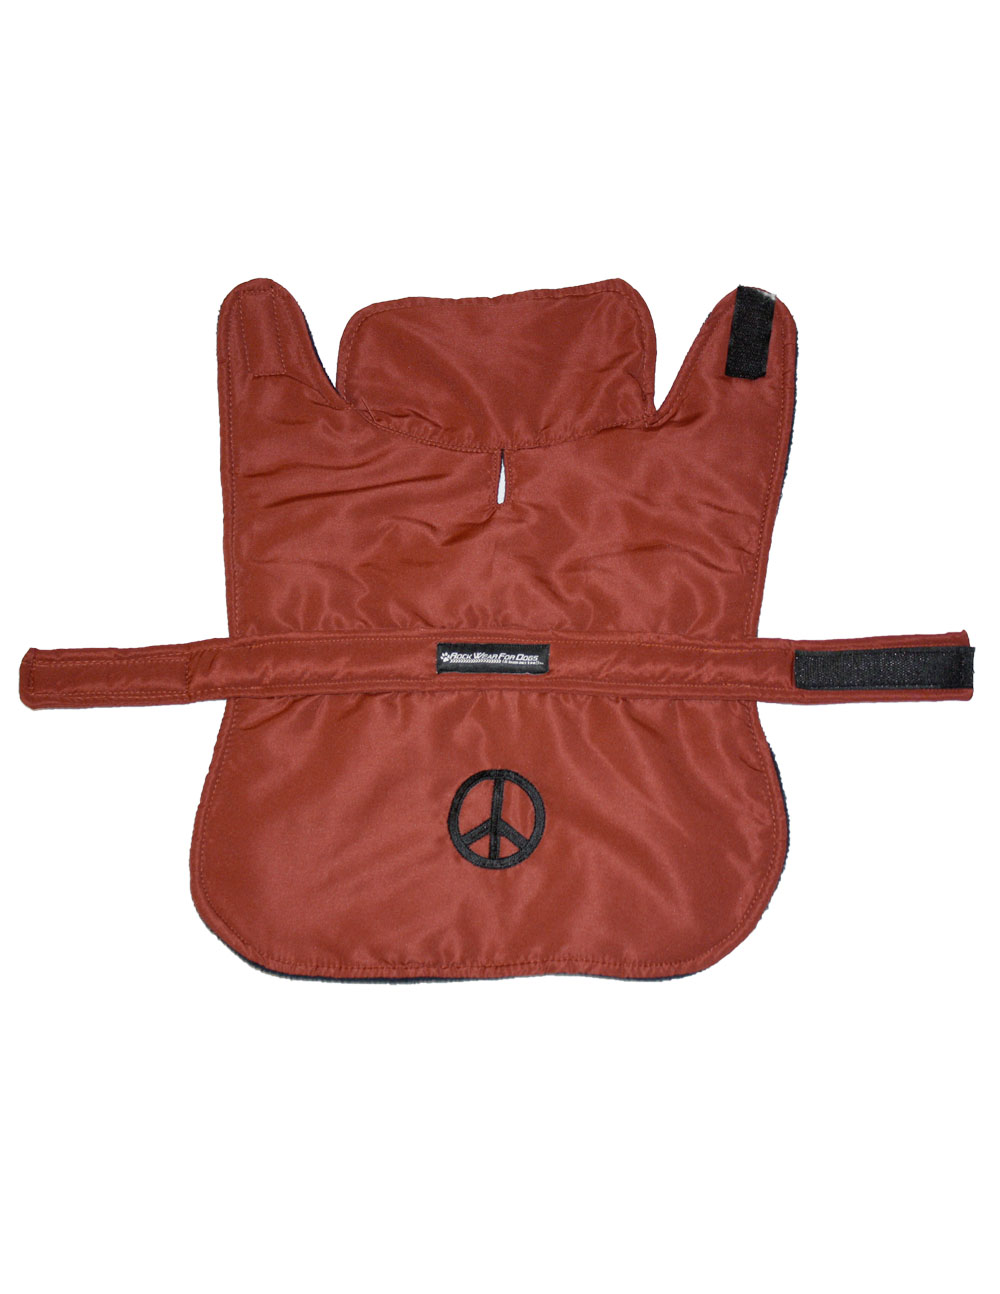 RUST JACKET WITH PEACE SIGN - Click Image to Close